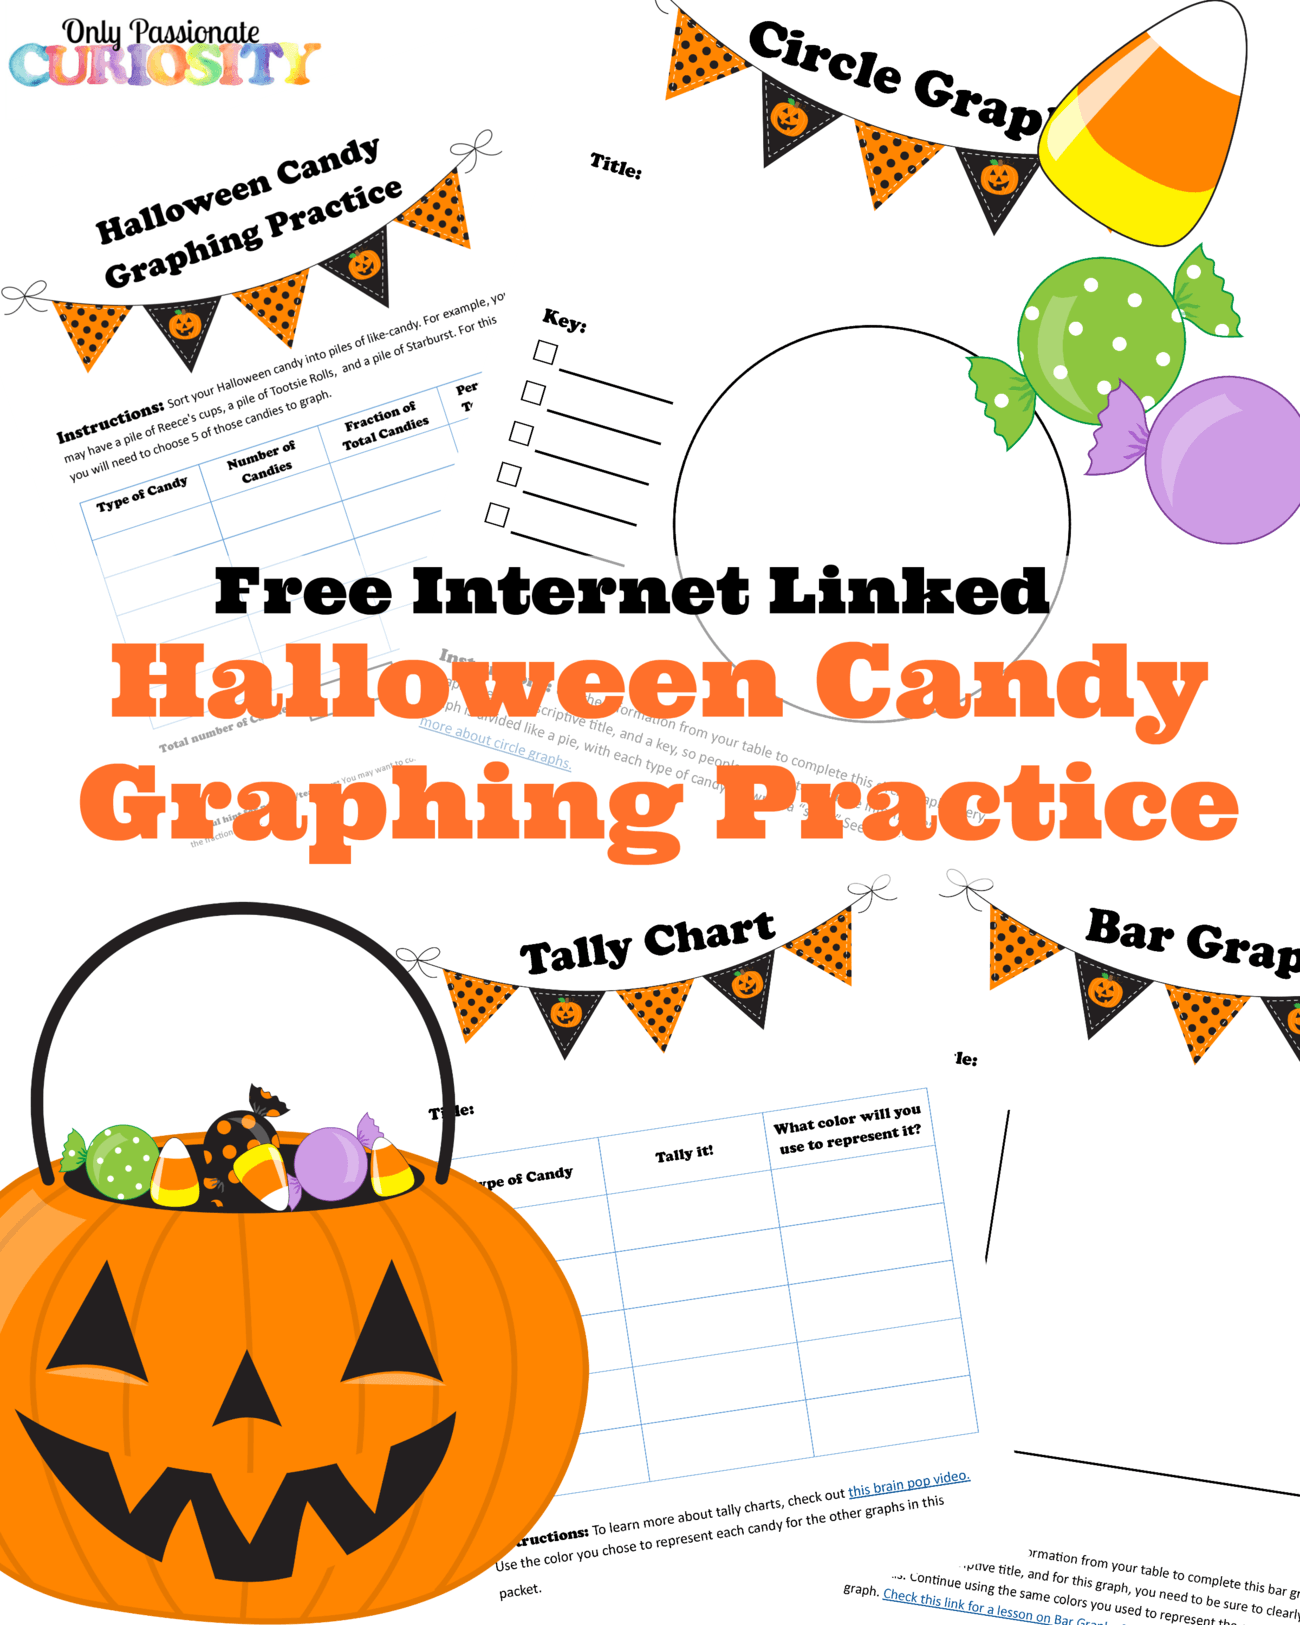 Halloween Candy Graphing Practice Free Printable Only Passionate Curiosity